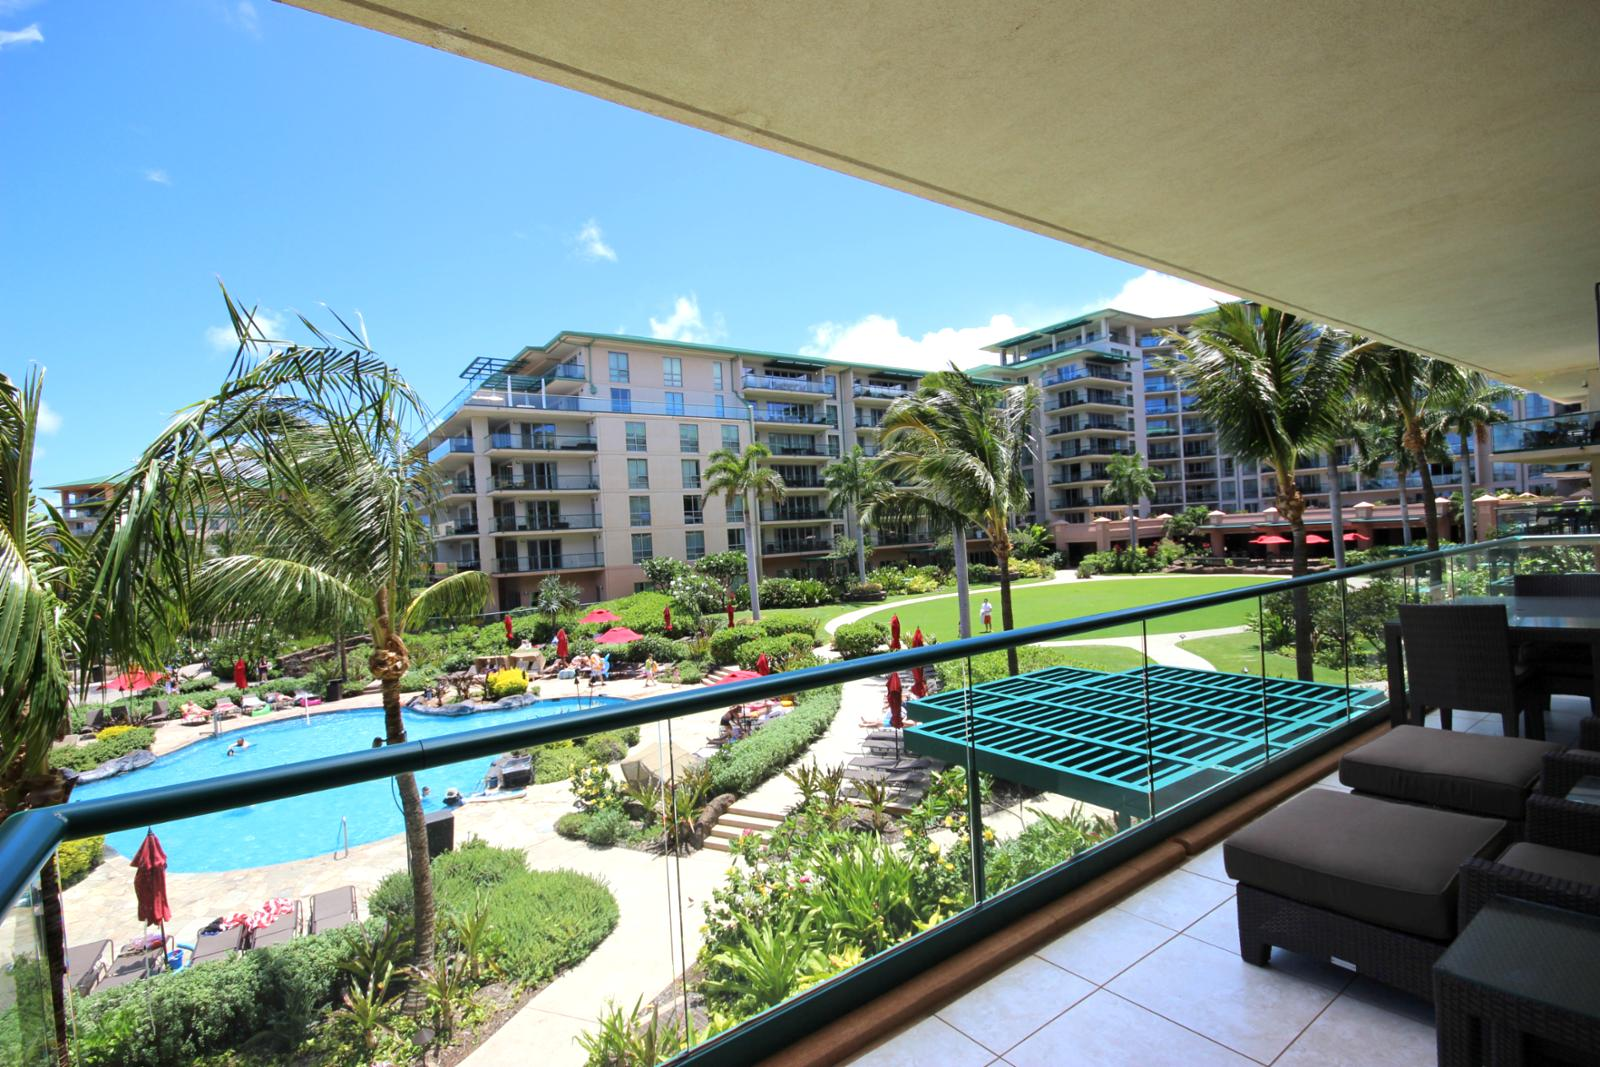 See all the action at the pool from your lanai